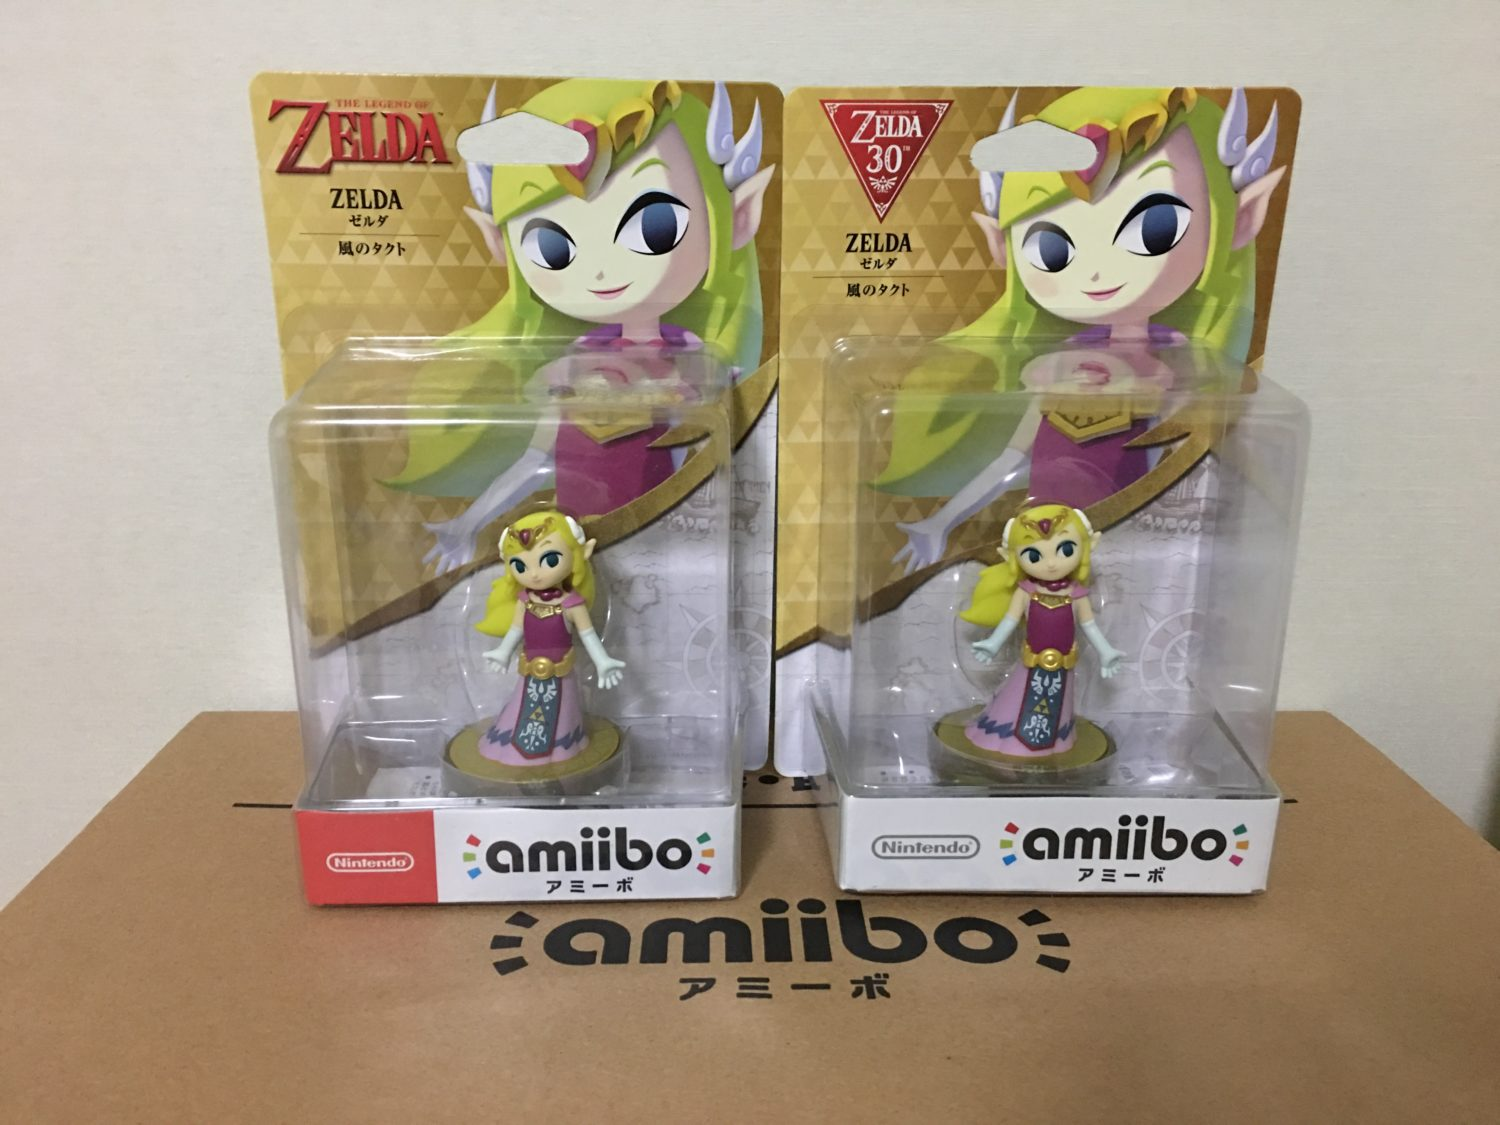 Know your amiibo the legend of zelda th anniversary reprint